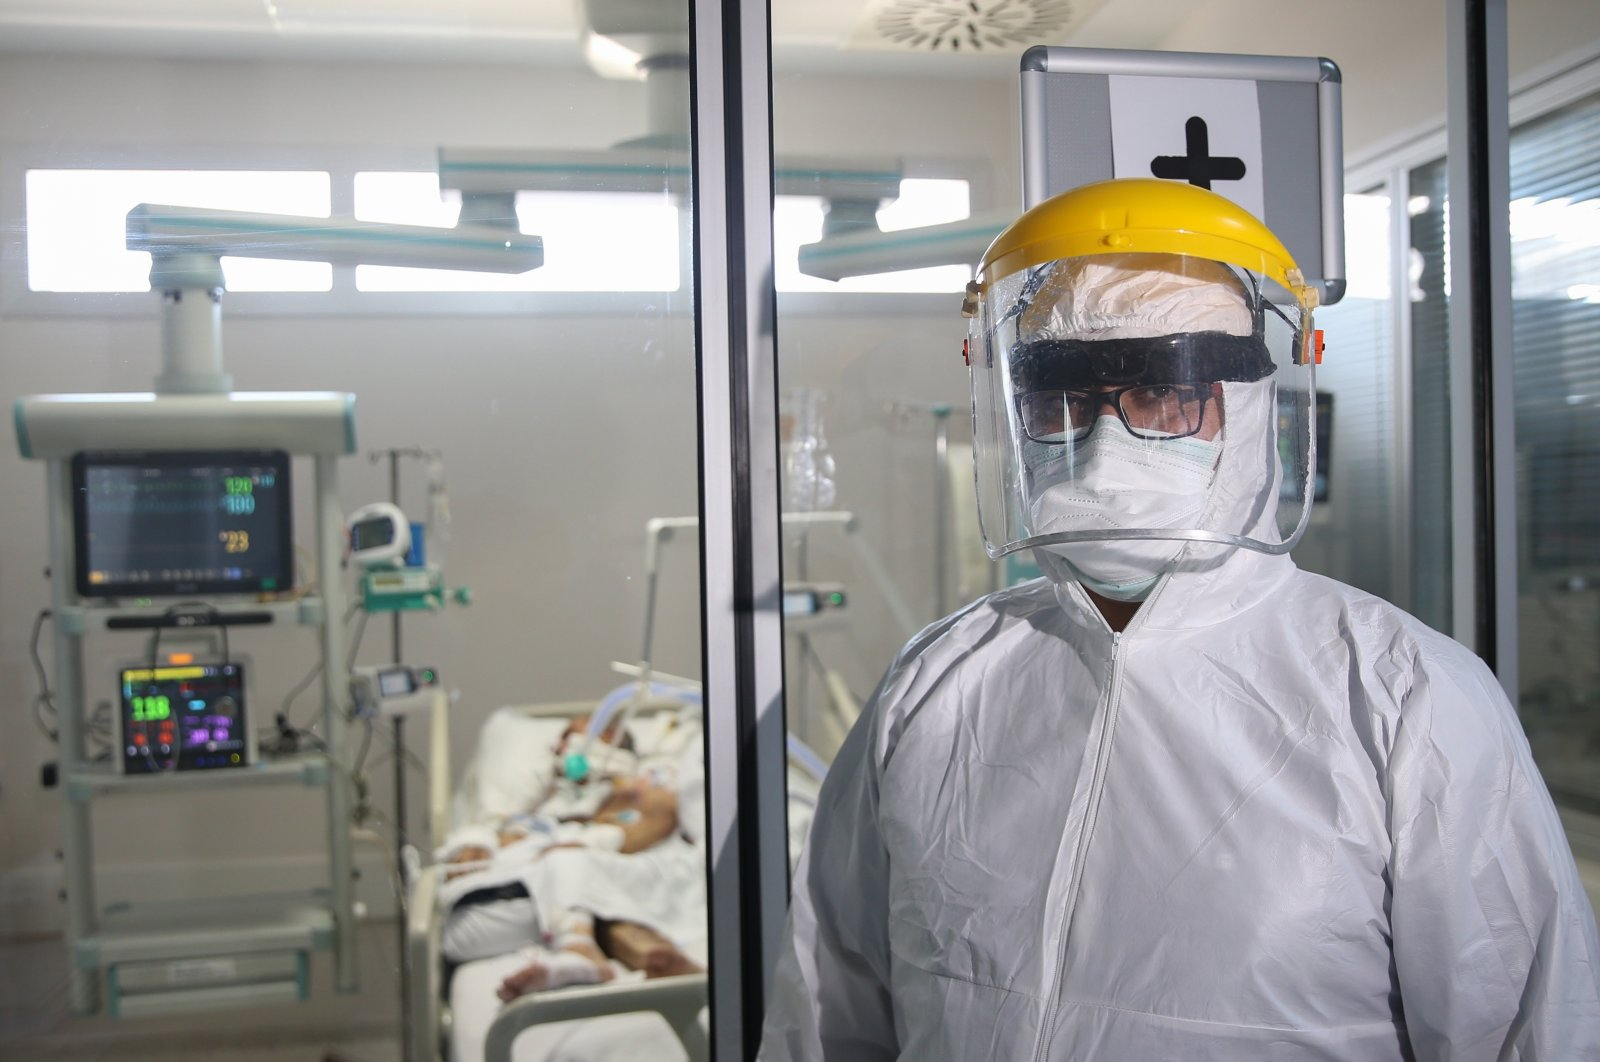 Murat Yılmaz wearing protective gear stands at the entrance to an intensive care unit at the Akdeniz University Hospital in Antalya, southern Turkey, Sept. 15, 2020. (AA Photo)